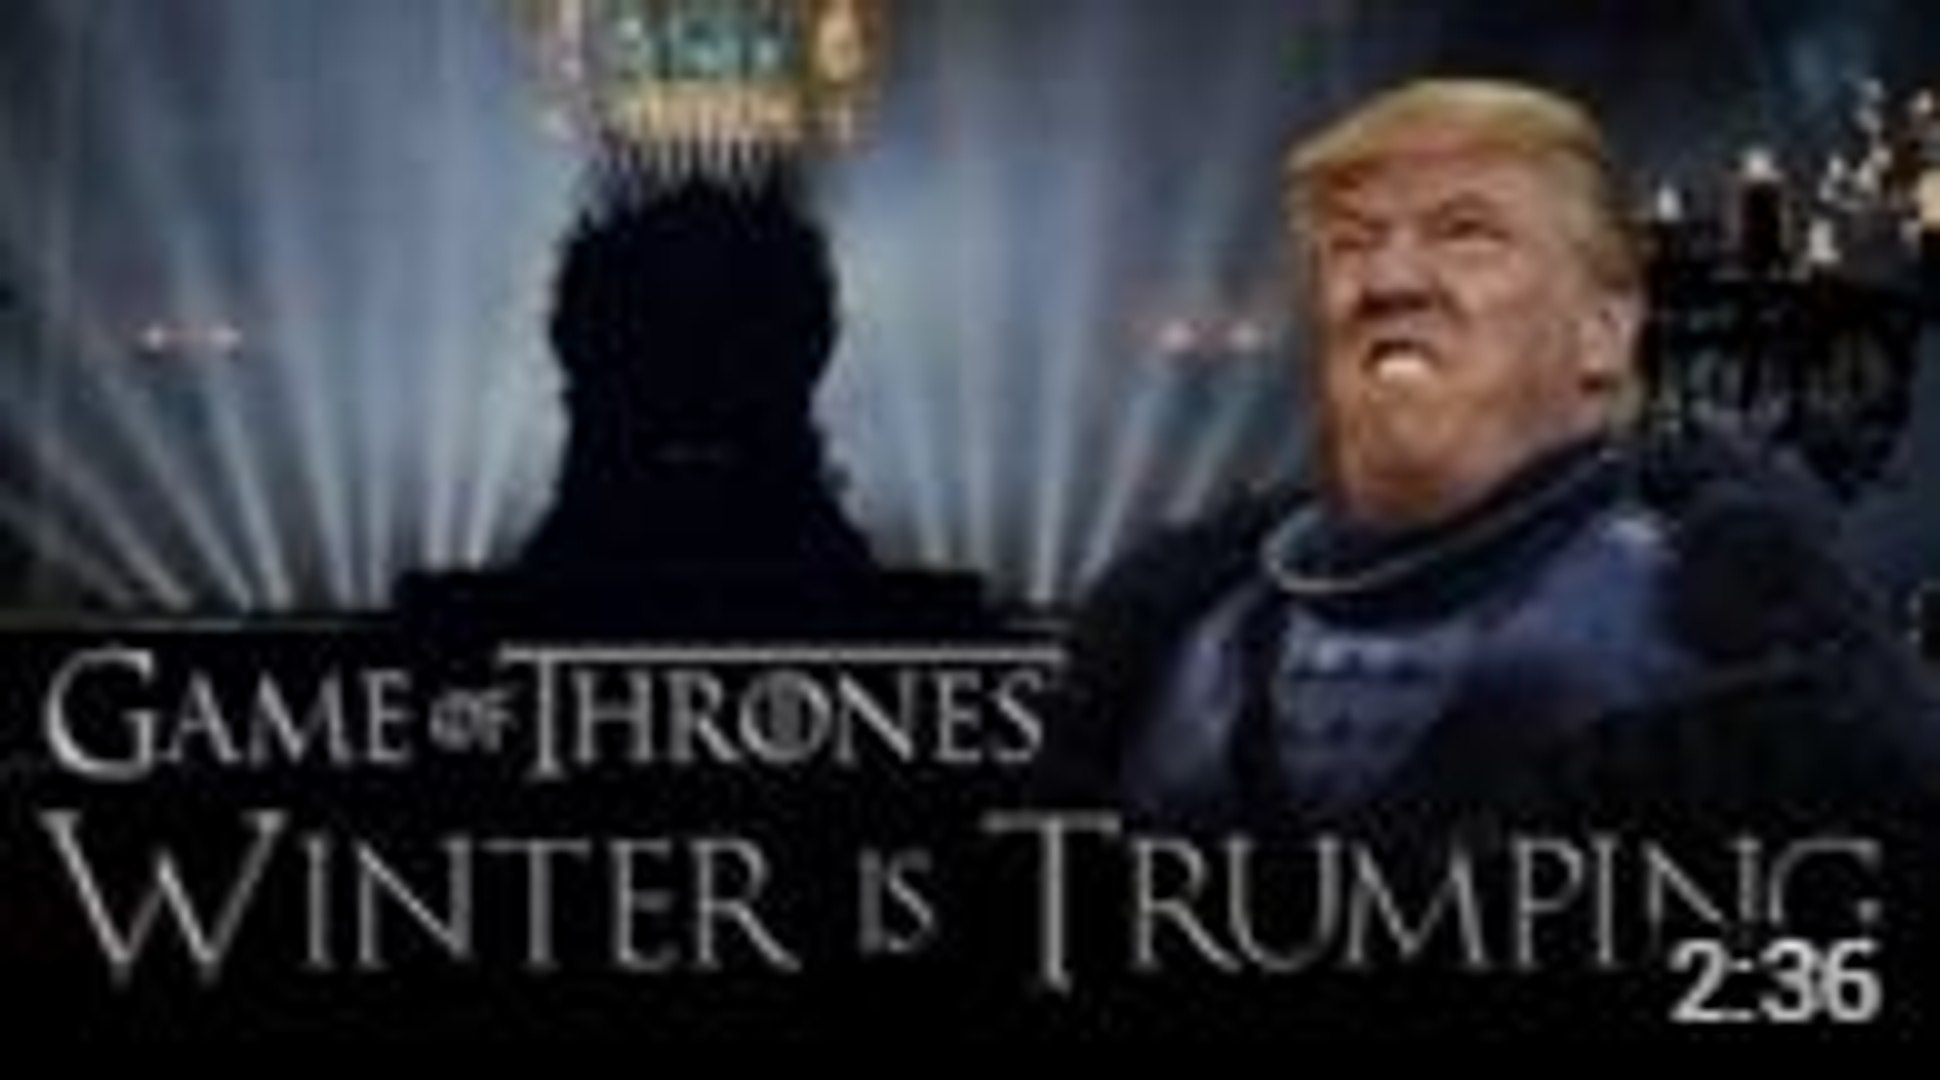 Game of Trump Parody : Donald Trump meets Game of Thrones at the Wall